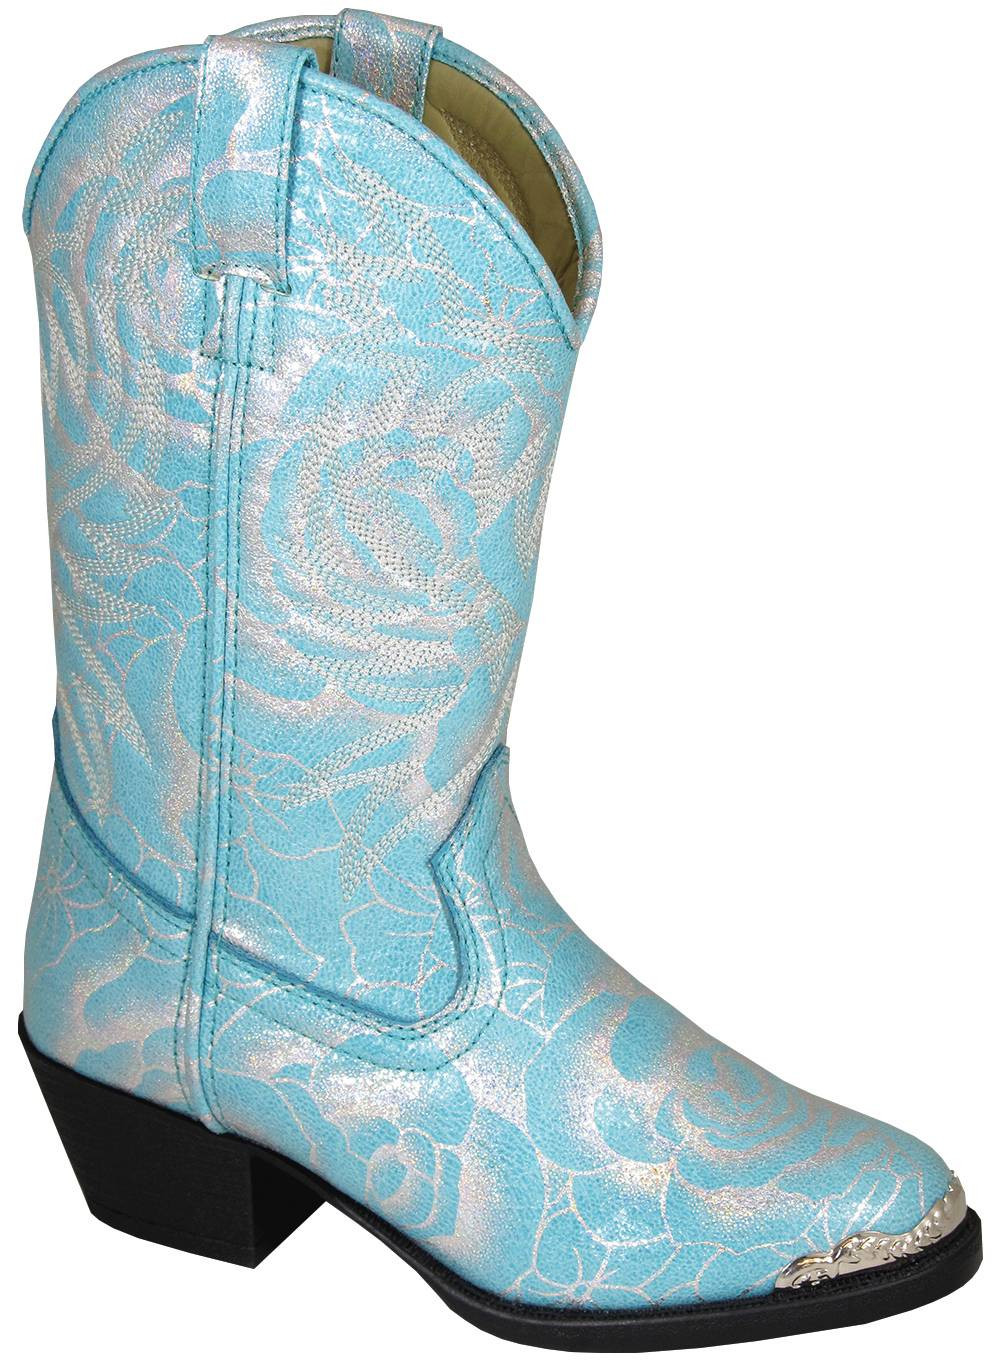 Smoky Mountain Lexie Boots - Toddler - Blue